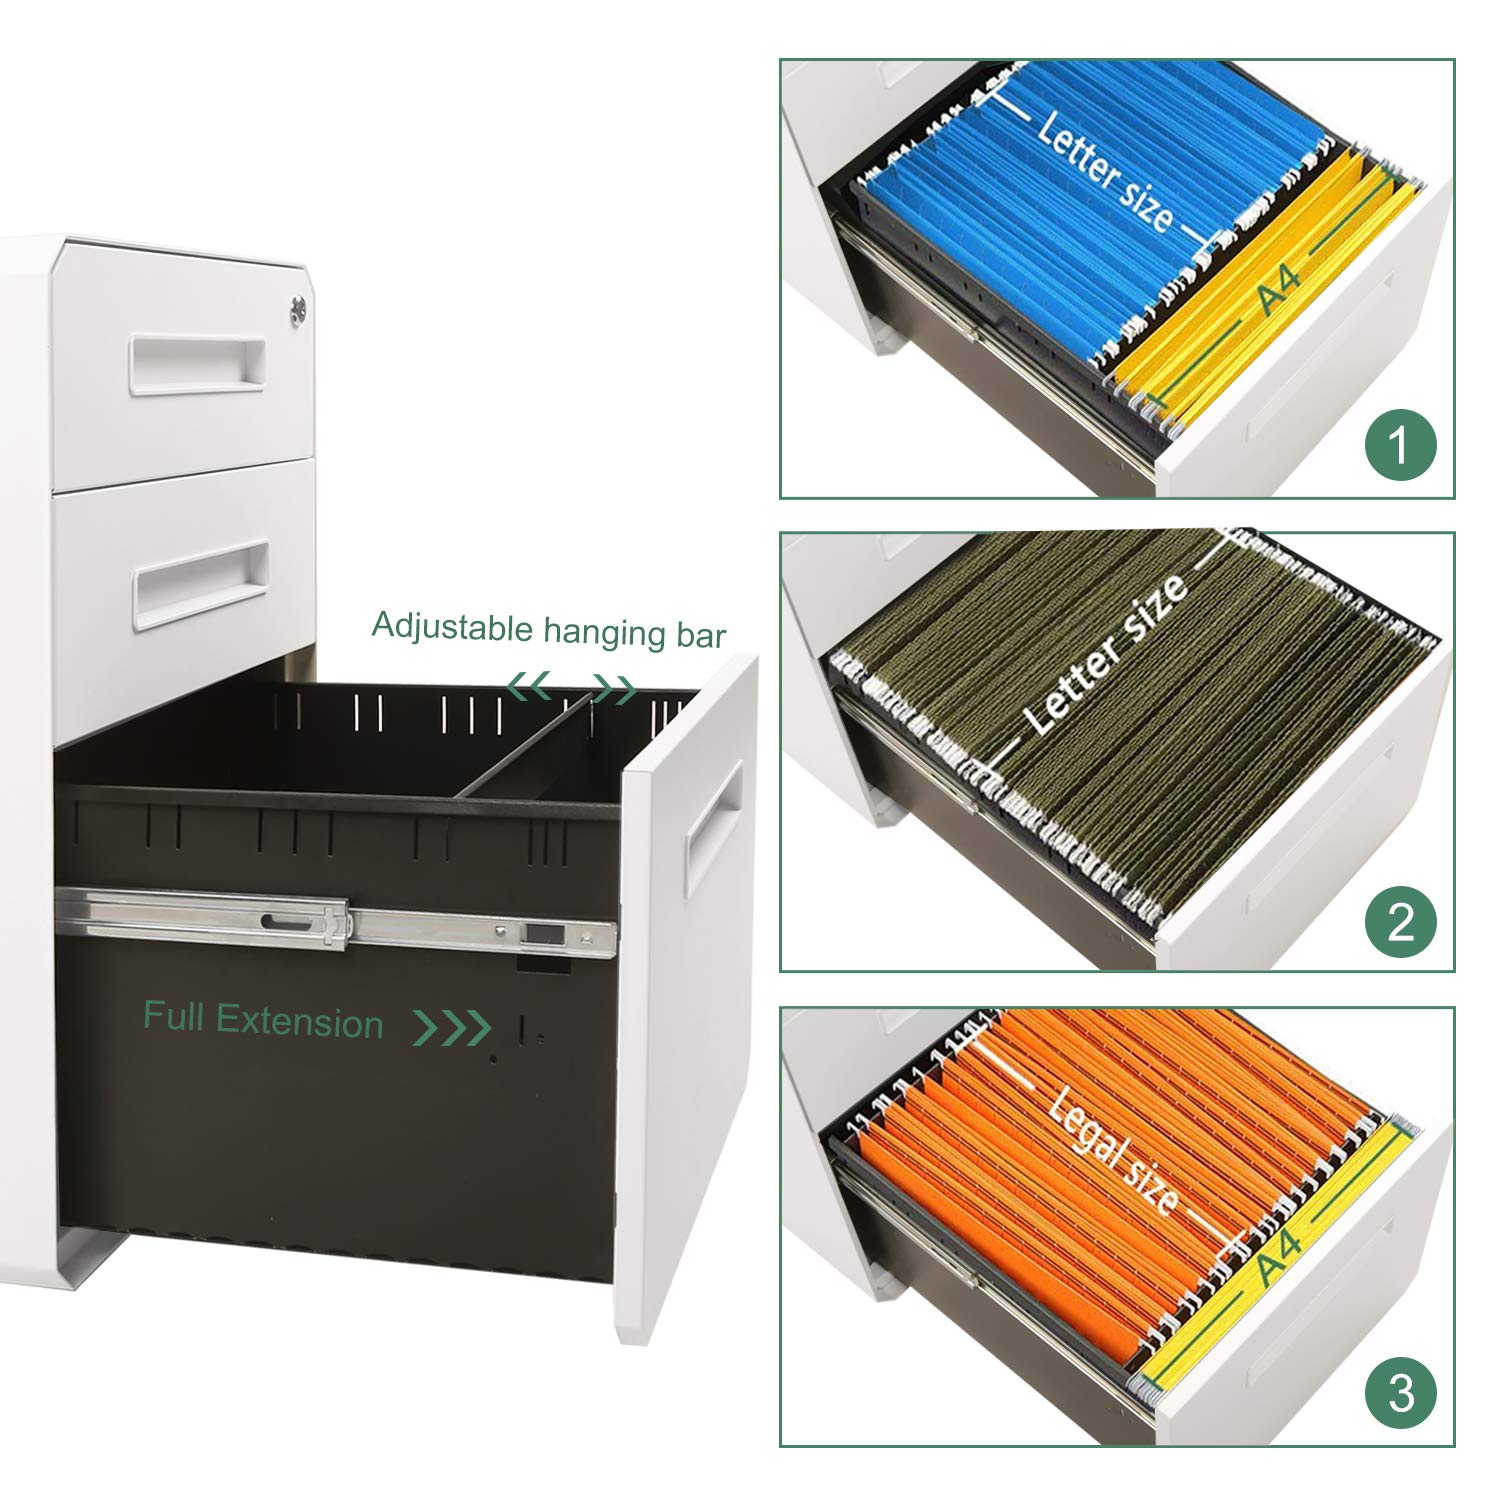 M&W 3 Drawer Mobile File Cabinet, Metal Locking Letter Filing Cabinet by M/W M & W (Image #4)